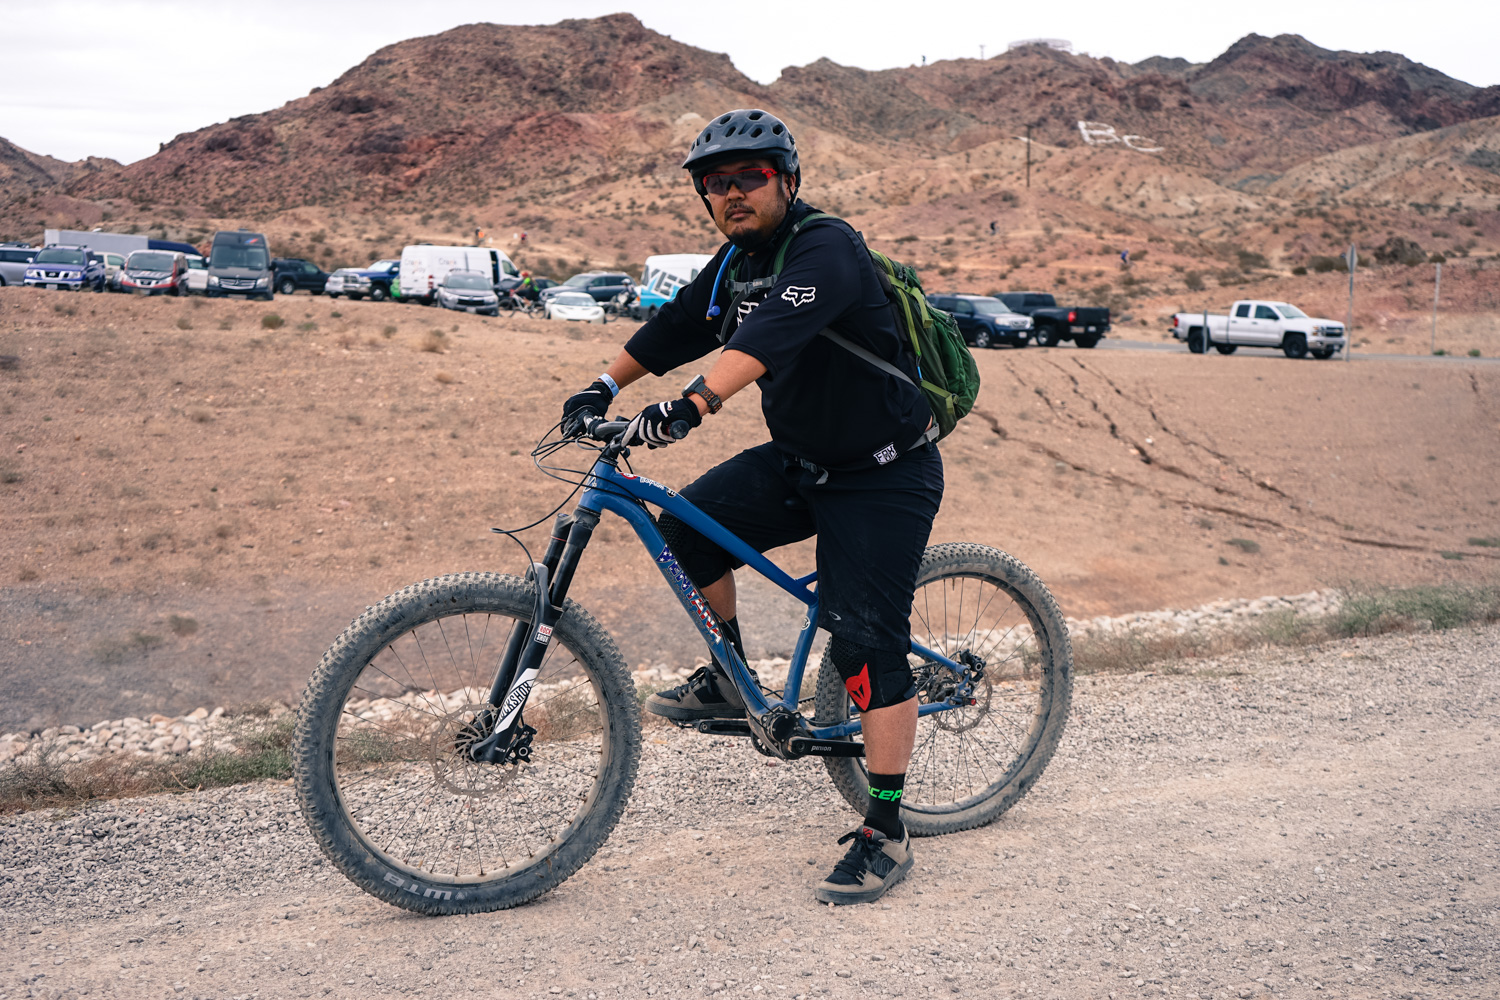 Randy from Lake Tahoe tried out plus-size and gearbox tech all in one bike.